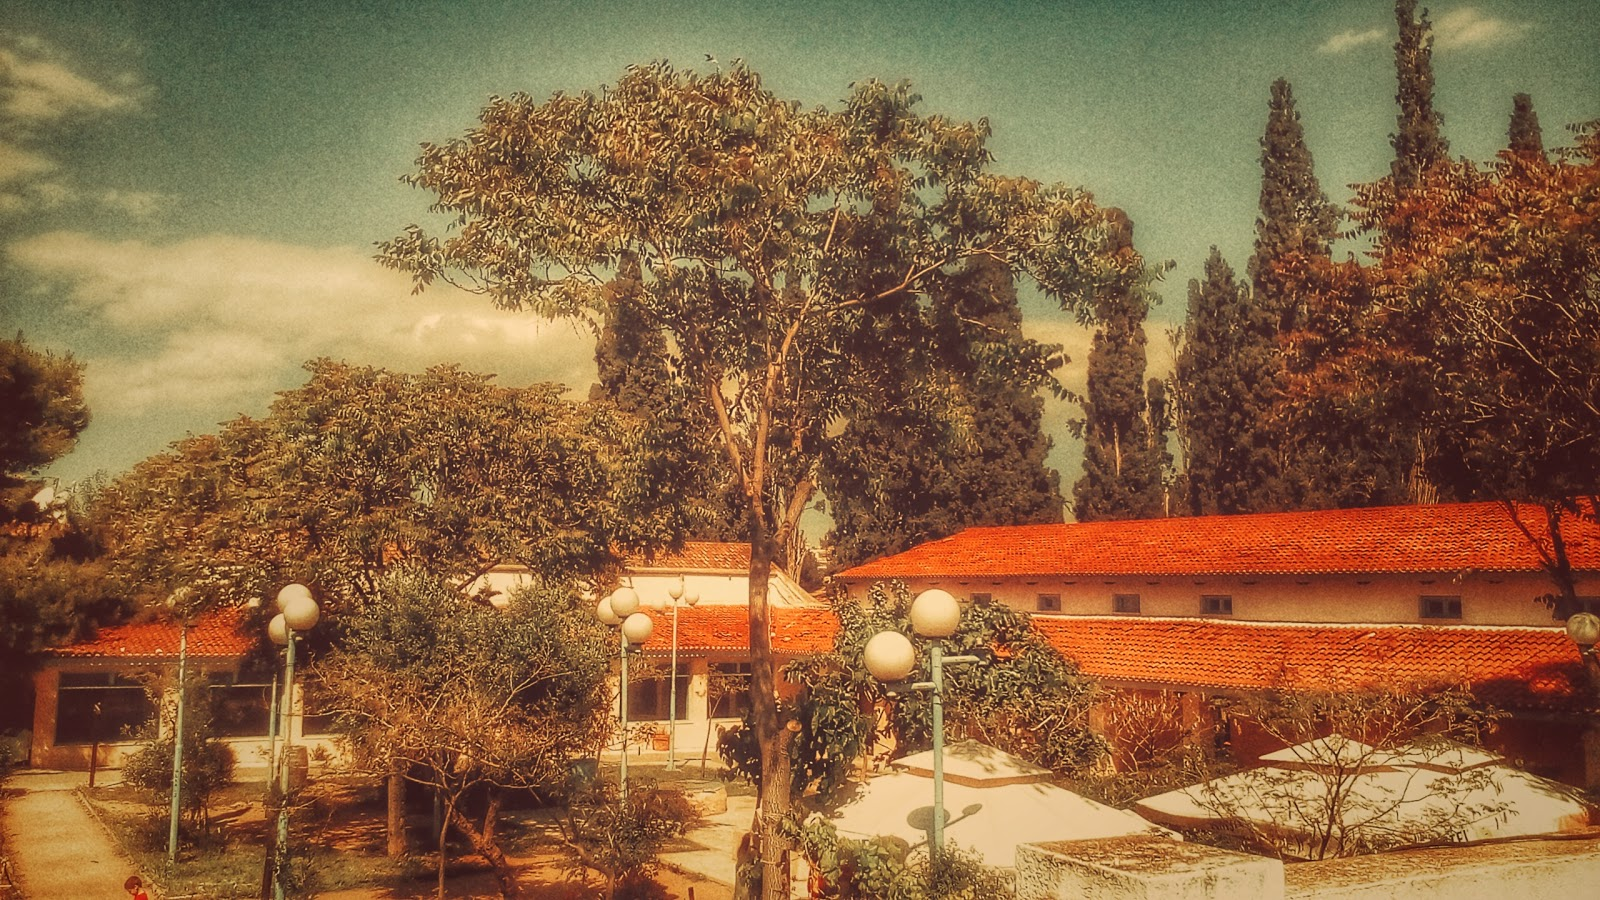 Colorful photo shot from a rooftop, showing a tree with leaves only on top of it and a long-shaped building with roof-tiles besides it. 'Tree and Building' photo by Kostas Gogas.